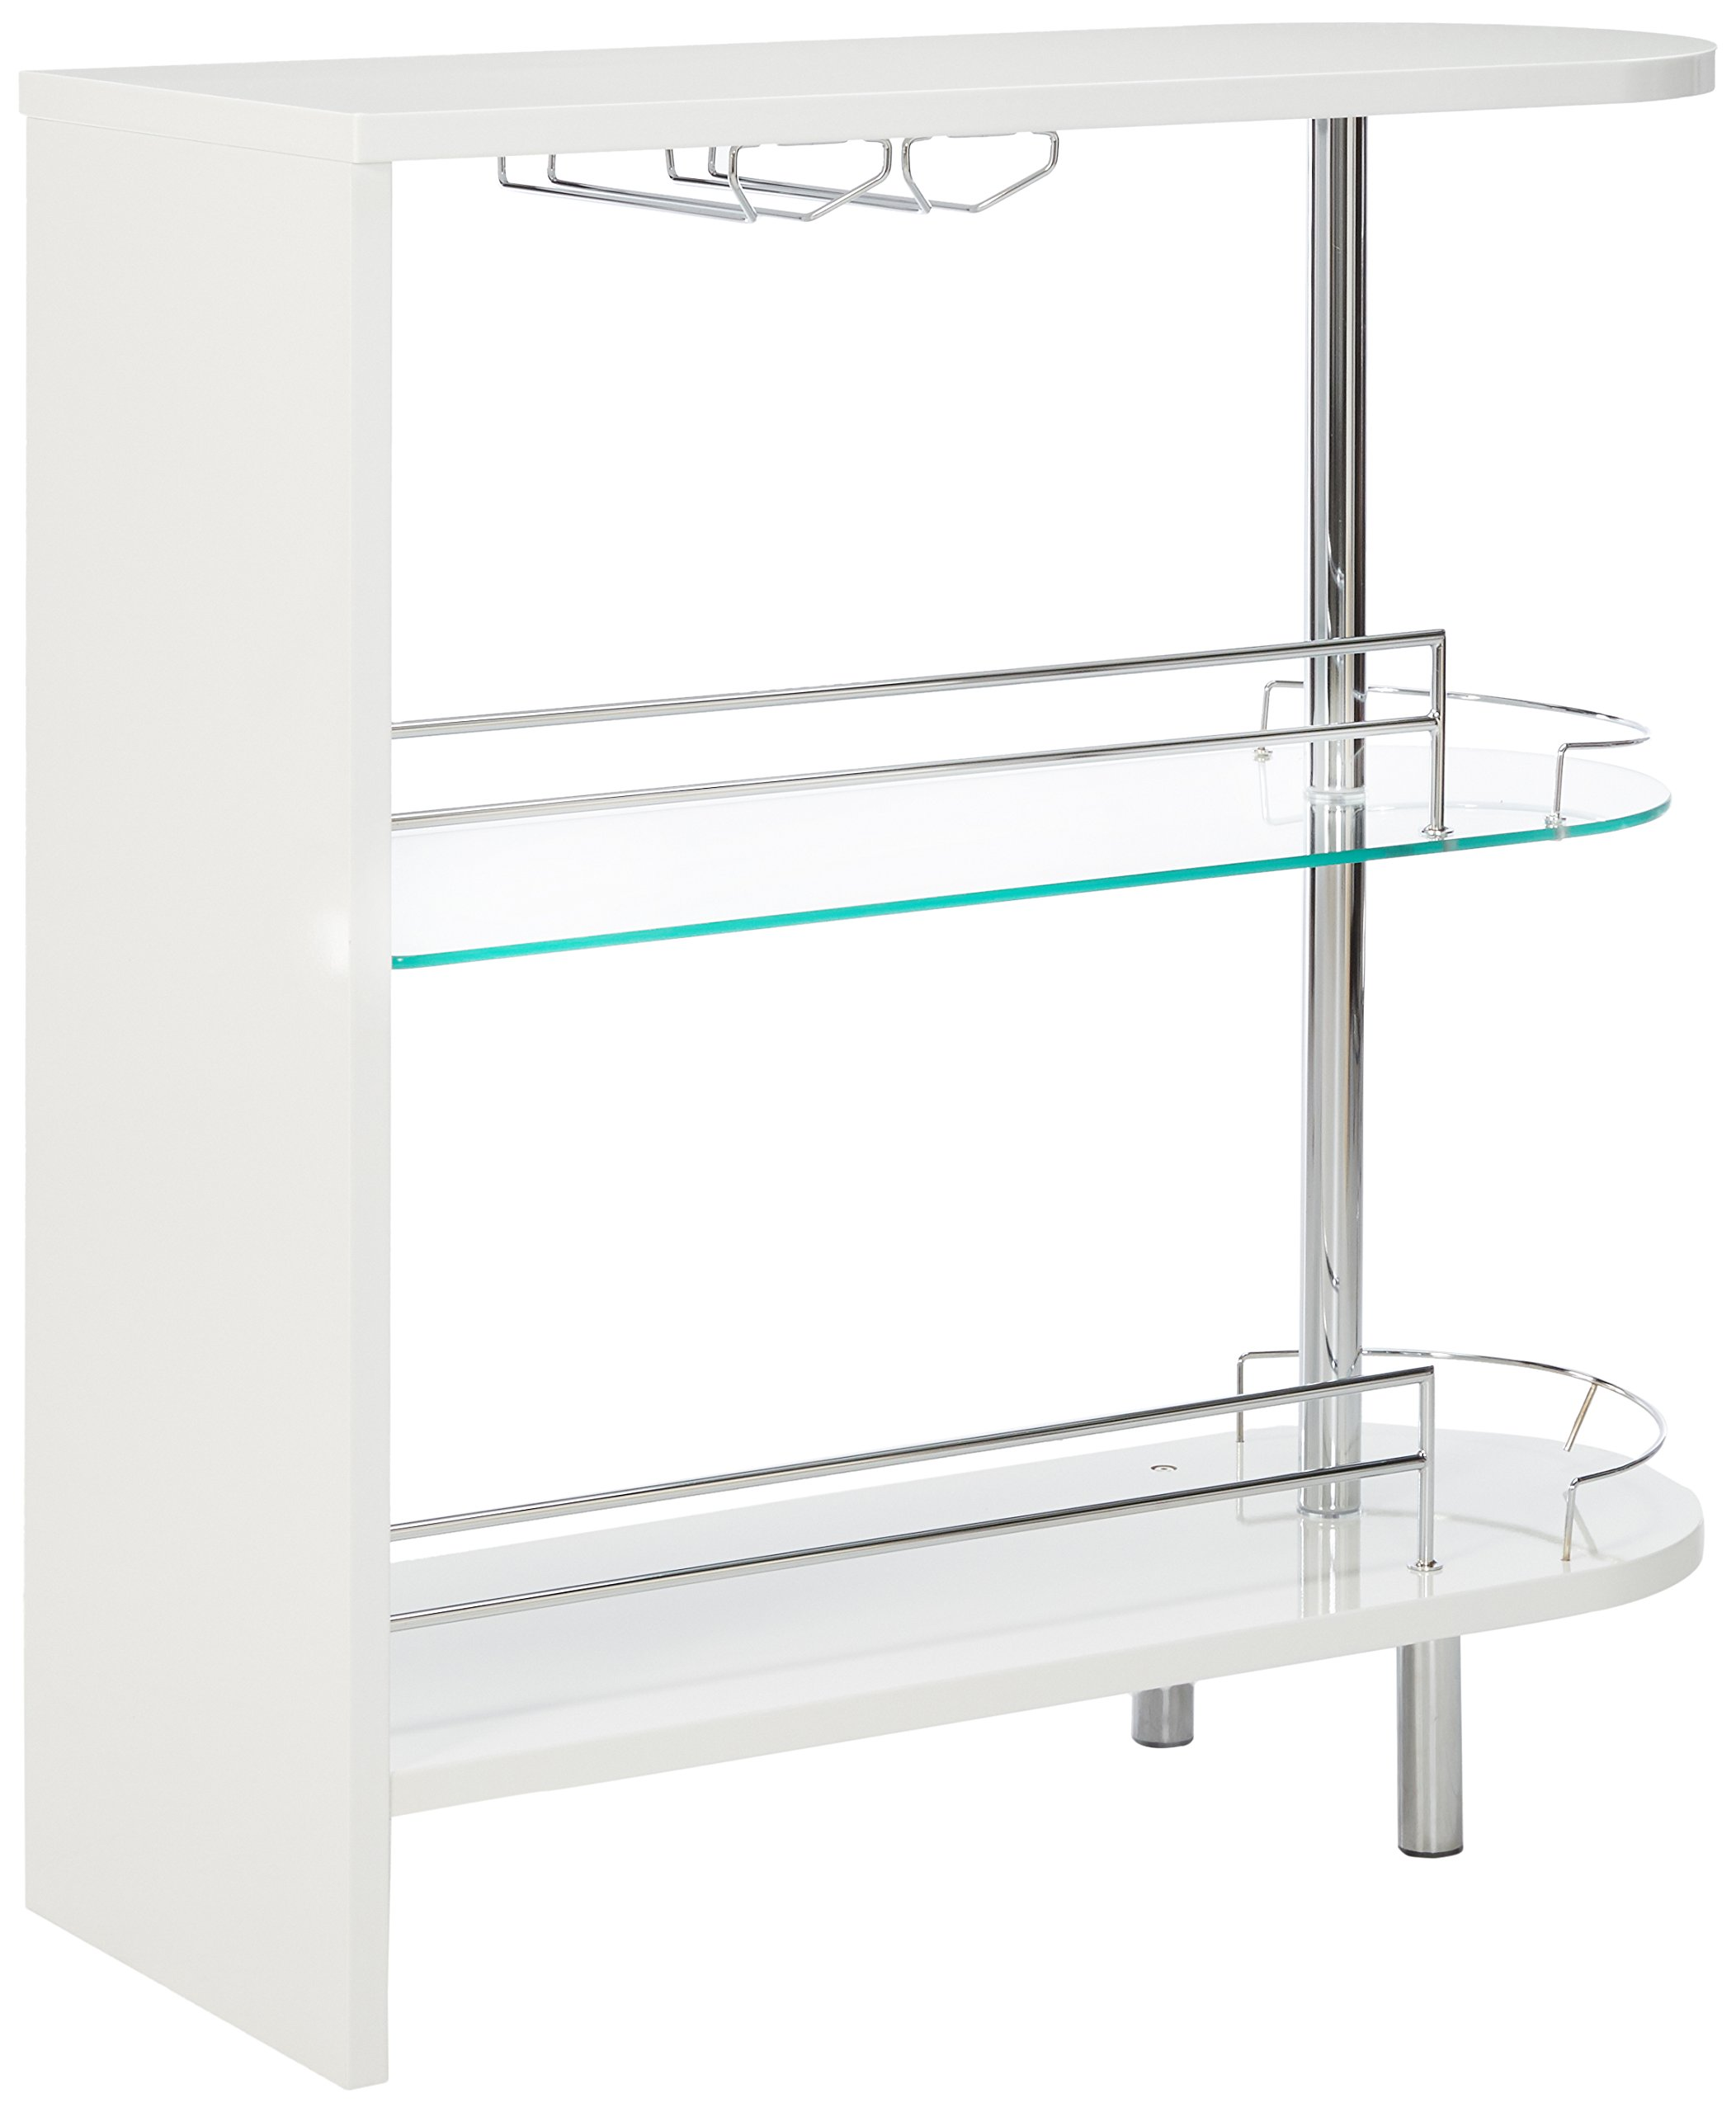 2-holder Bar Table Glossy White and Clear by Coaster Home Furnishings